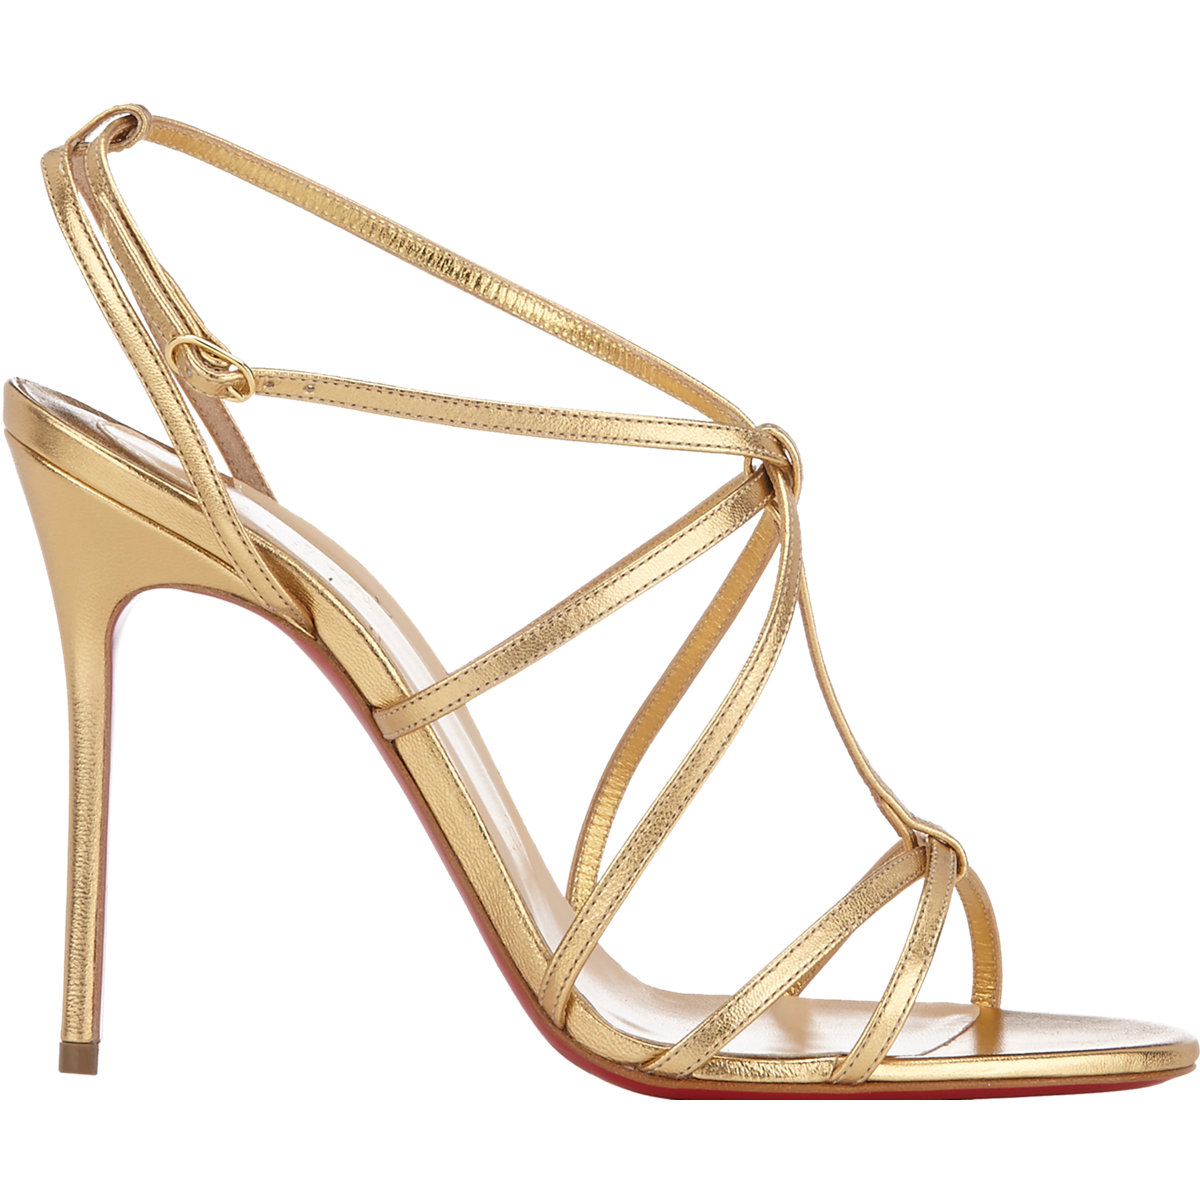 e93d9a4863e Christian Louboutin Youpiyou Metallic Leather Sandals in Metallic - Lyst